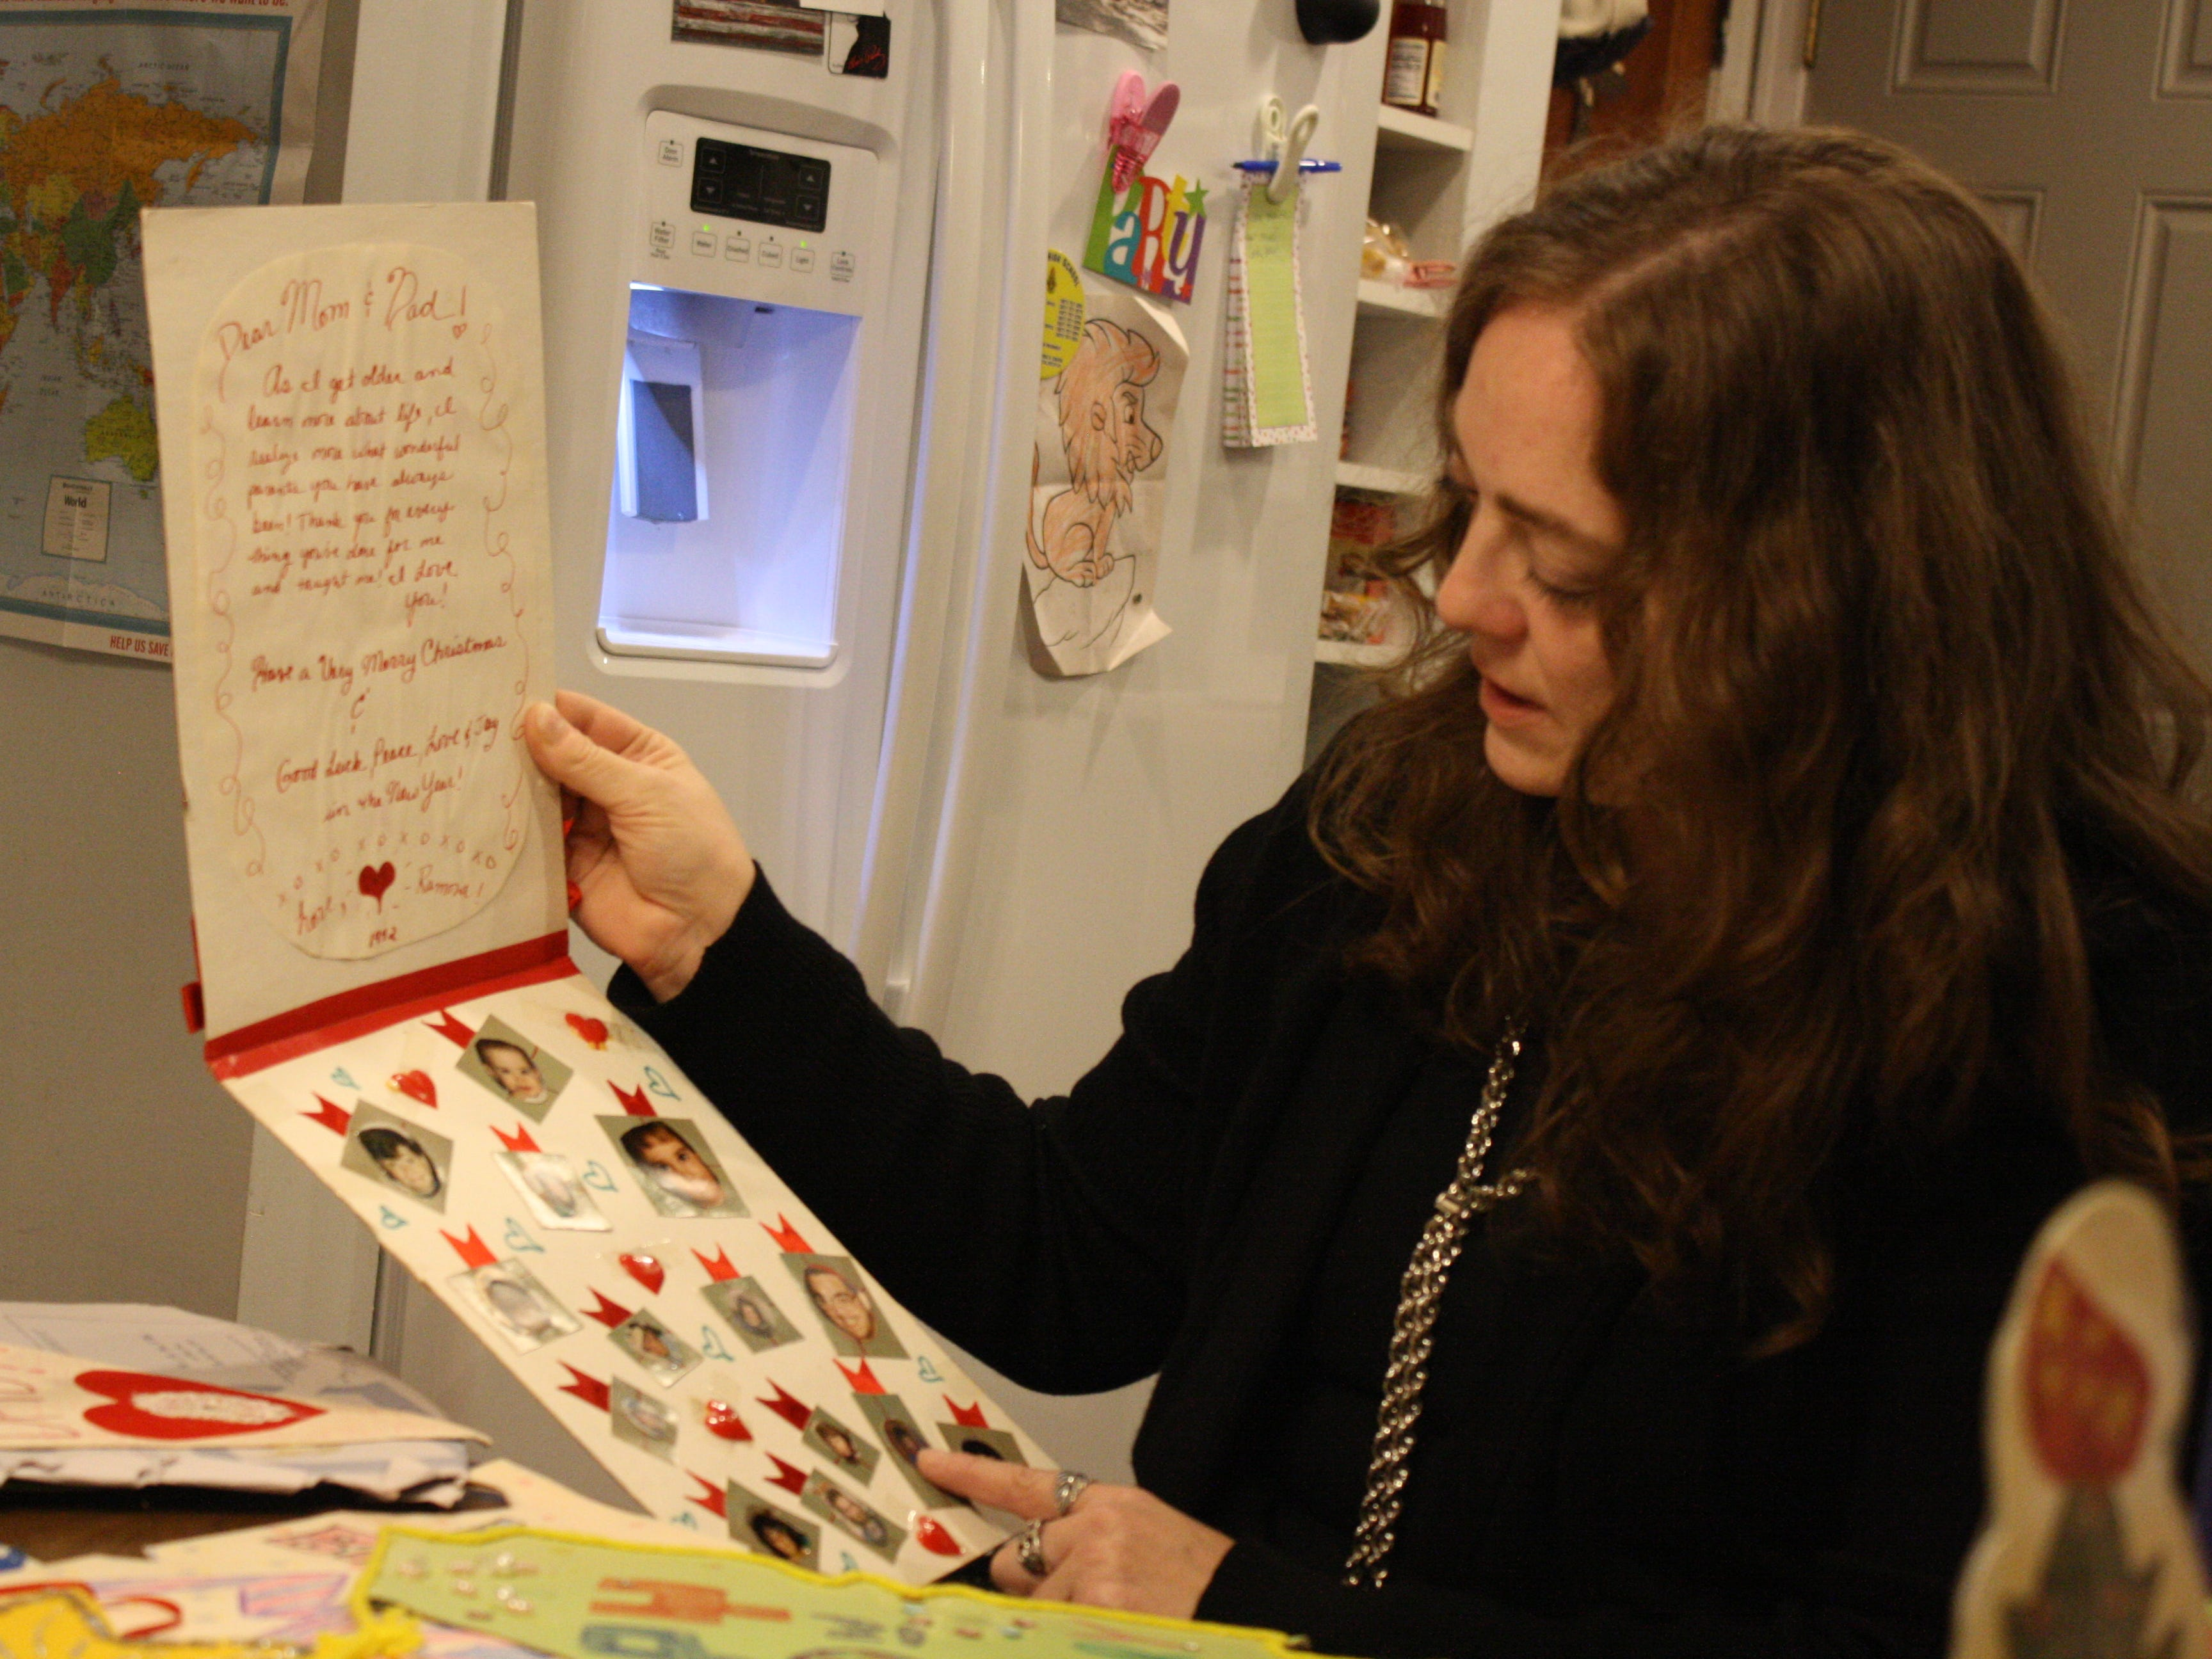 Vestal artist Ramona Kacyvenski and her father-in-law, David Kacyvenski, will display nearly 200 handmade cards in a show at the Phelps Mansion Museum on Nov. 2.